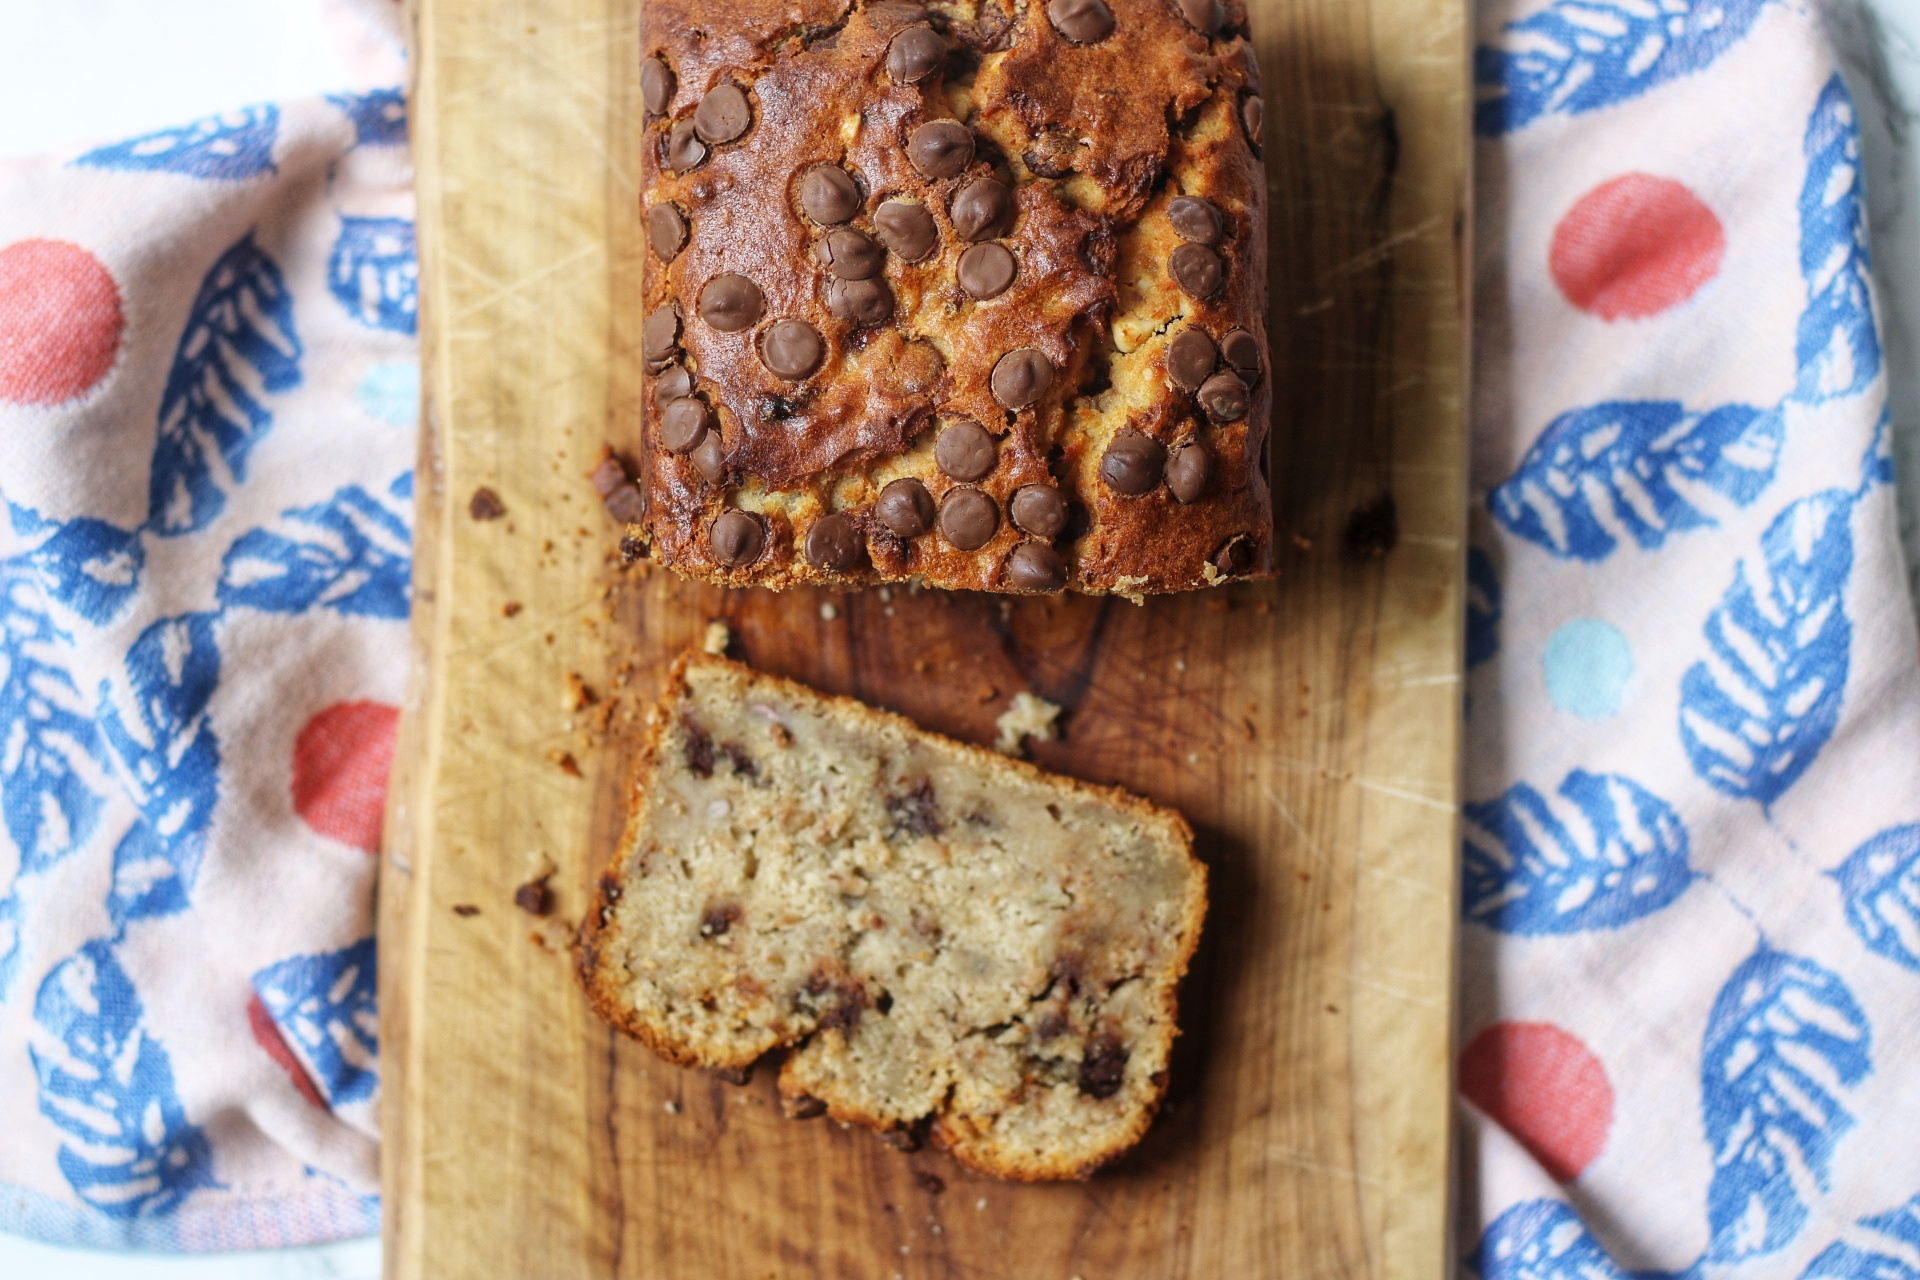 Peanut Butter & Chocolate Chip Banana Bread